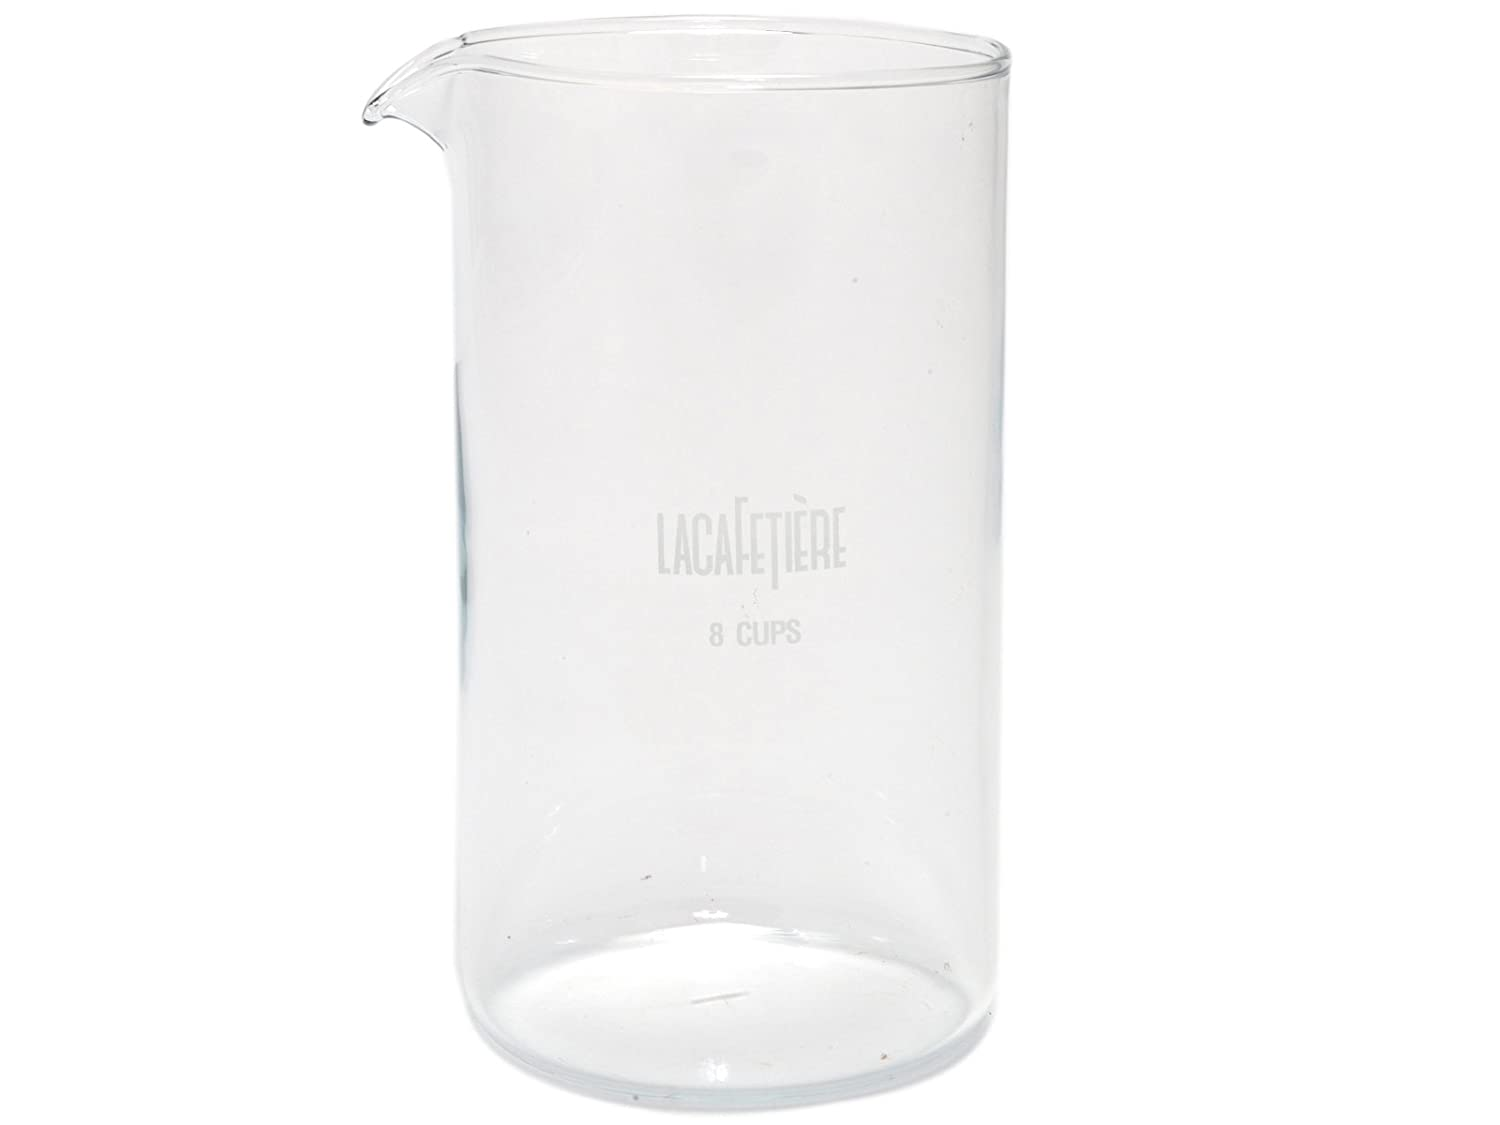 La Cafetière 8 Cup Replacement Beaker, Transparent – 1 L (1.75 pints) C20108 Coffee maker teapot coffee pot